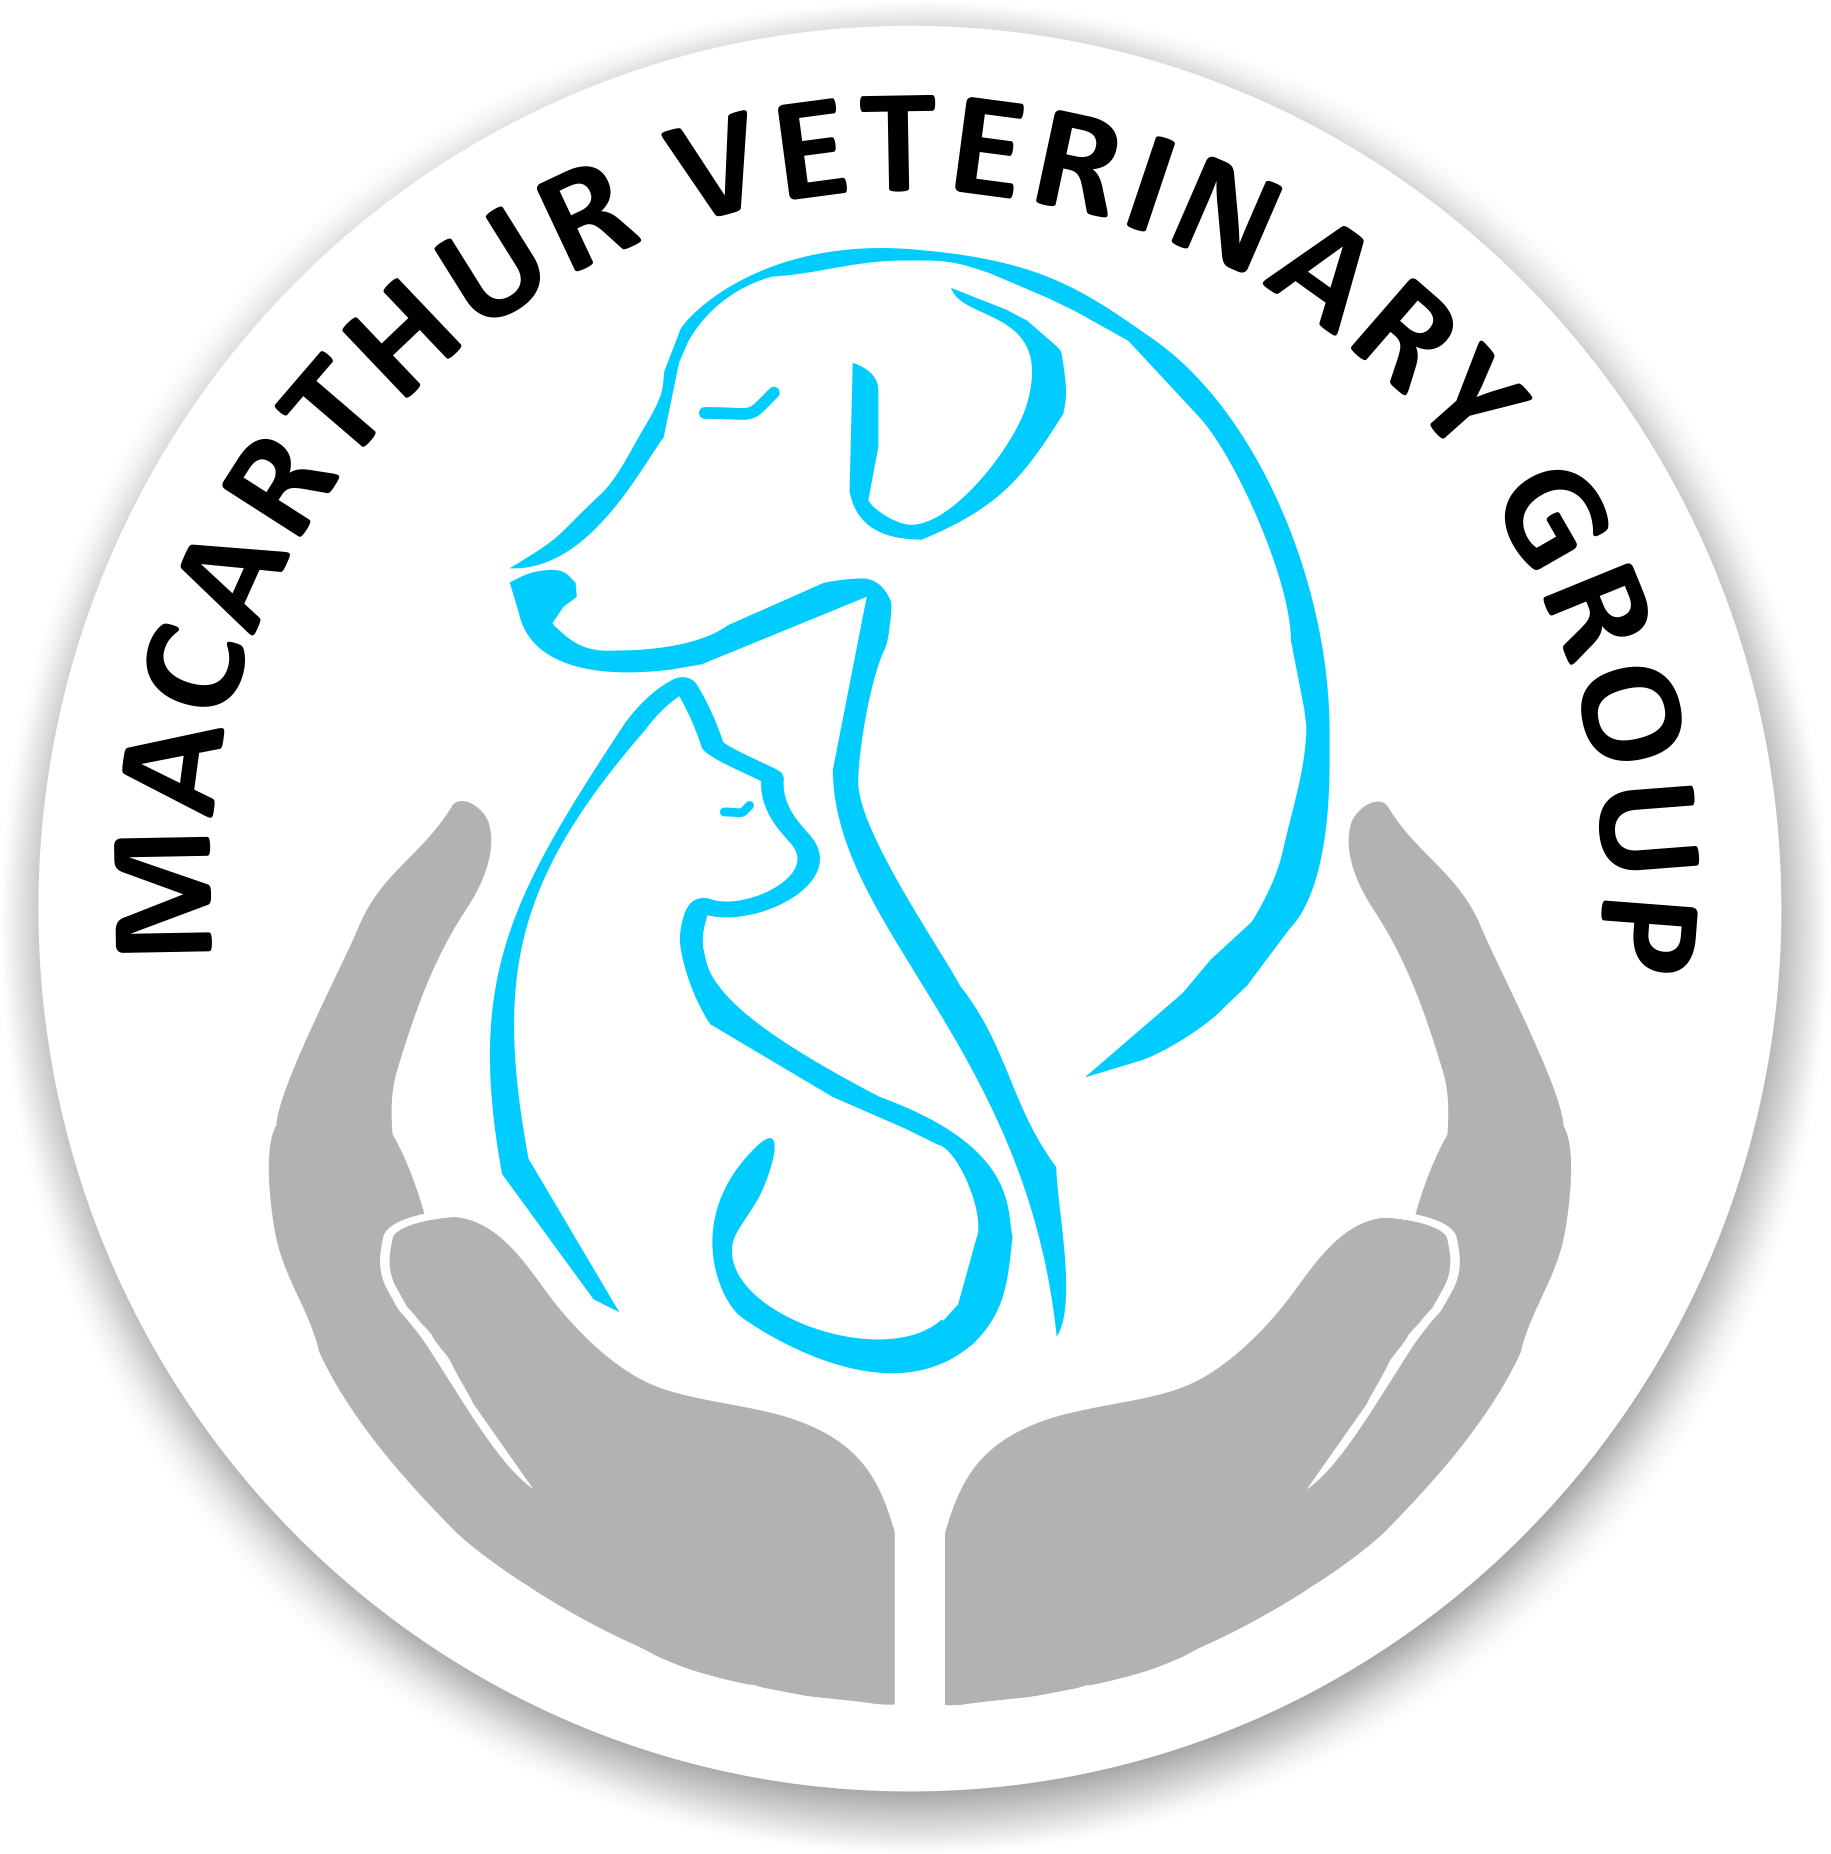 Macarthur Veterinary Group Logo